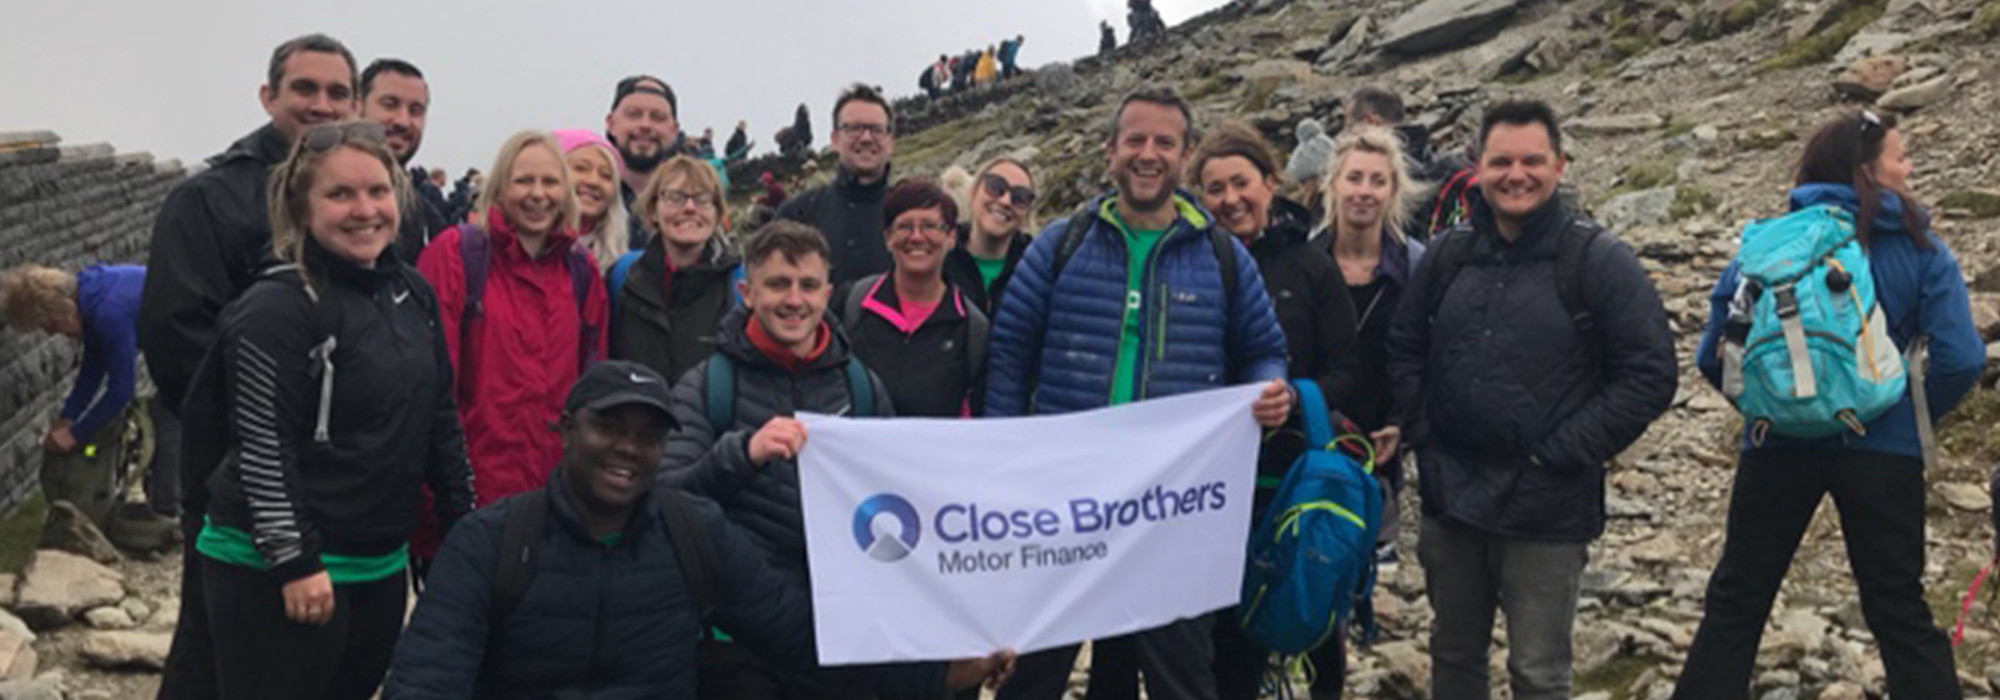 Close Brothers Motor Finance raise £31k for charity